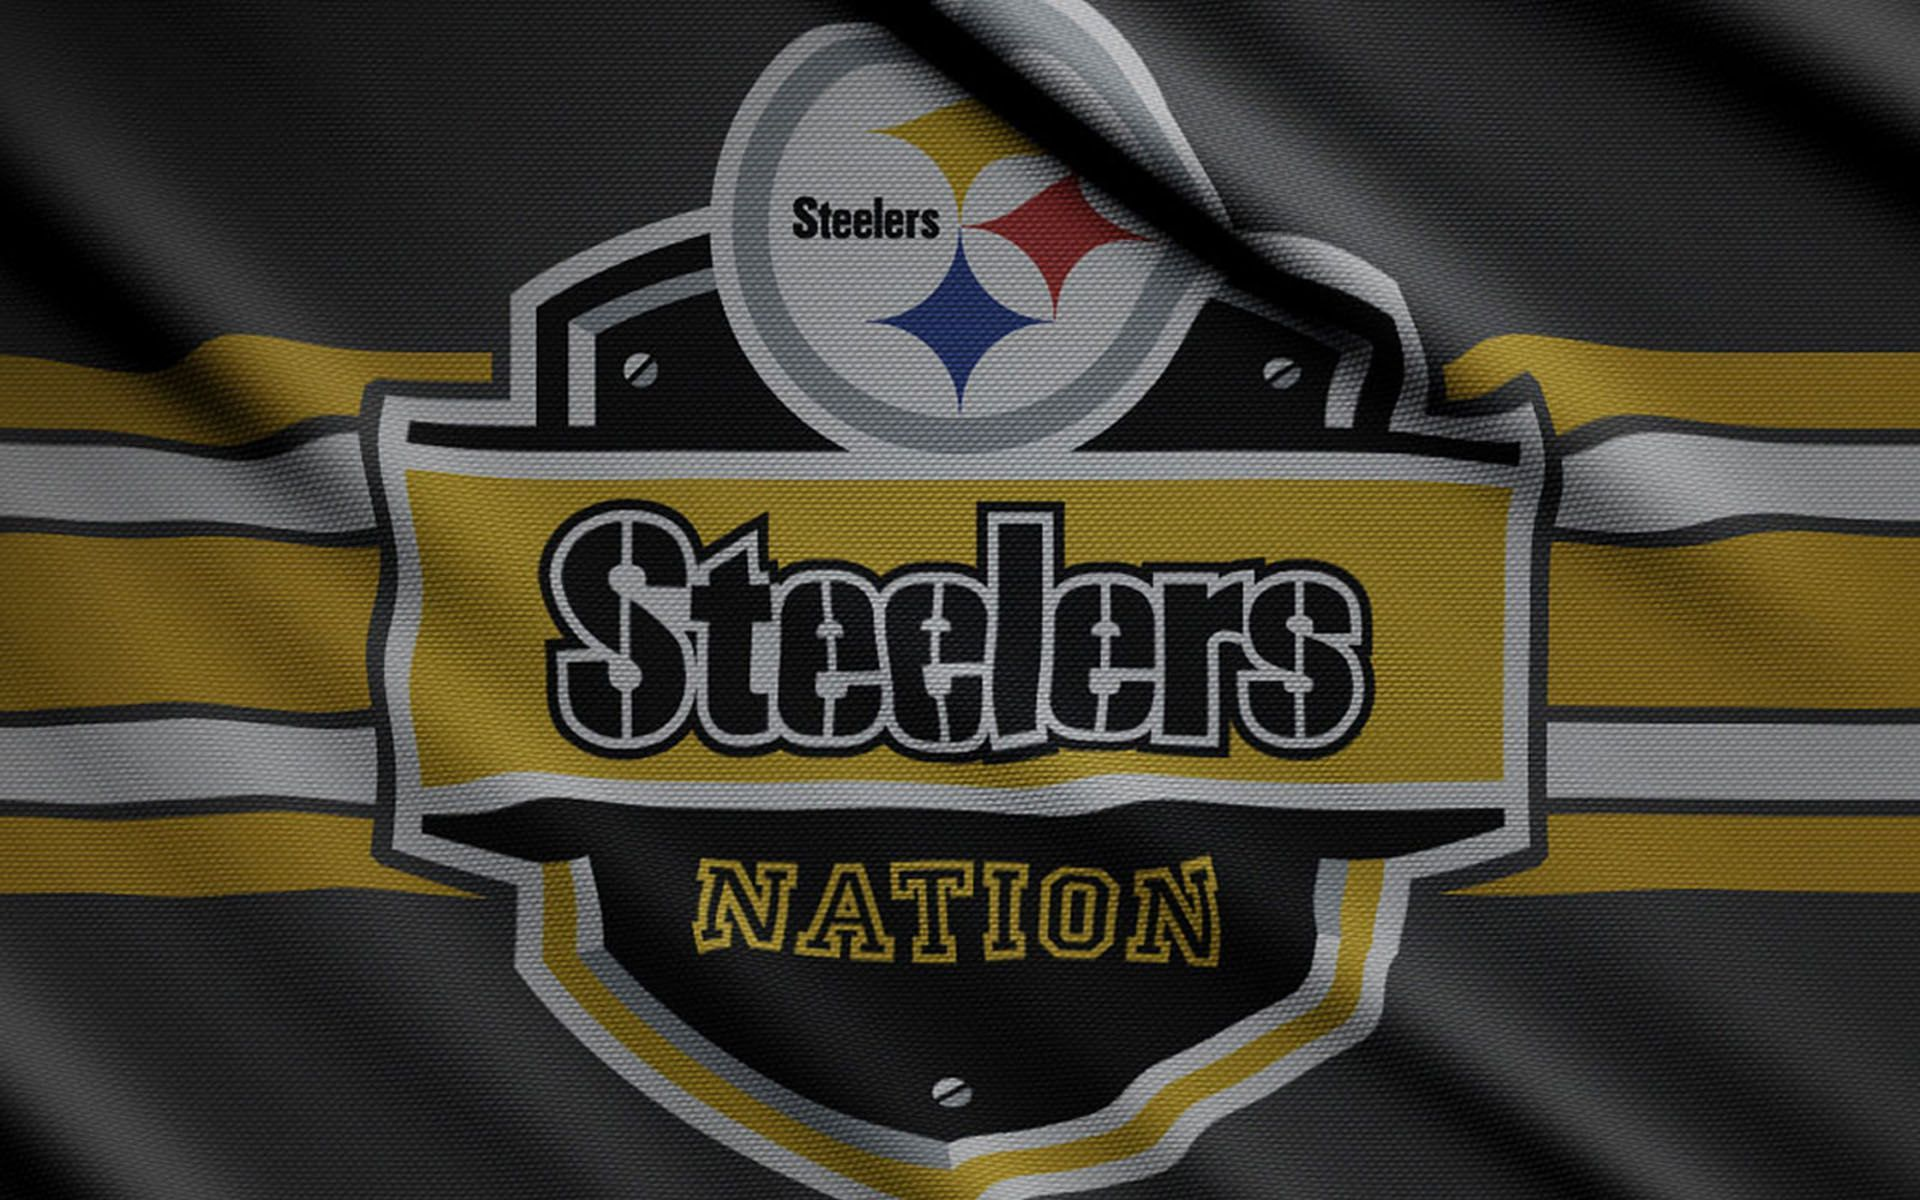 1920x1200 - Steelers Desktop 34